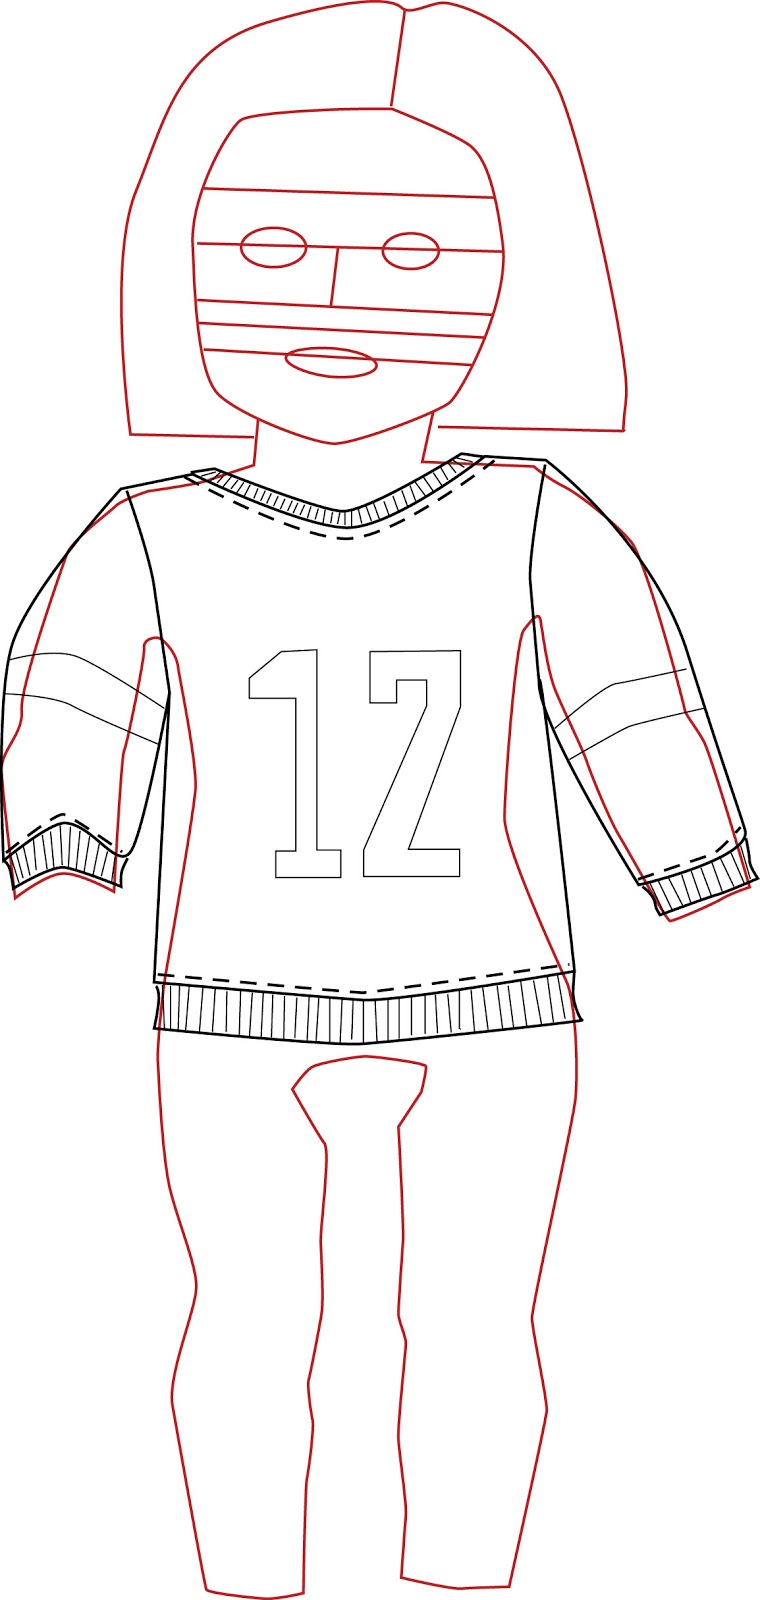 Doll Clothes Patterns by Valspierssews: My Design Process - from the ...